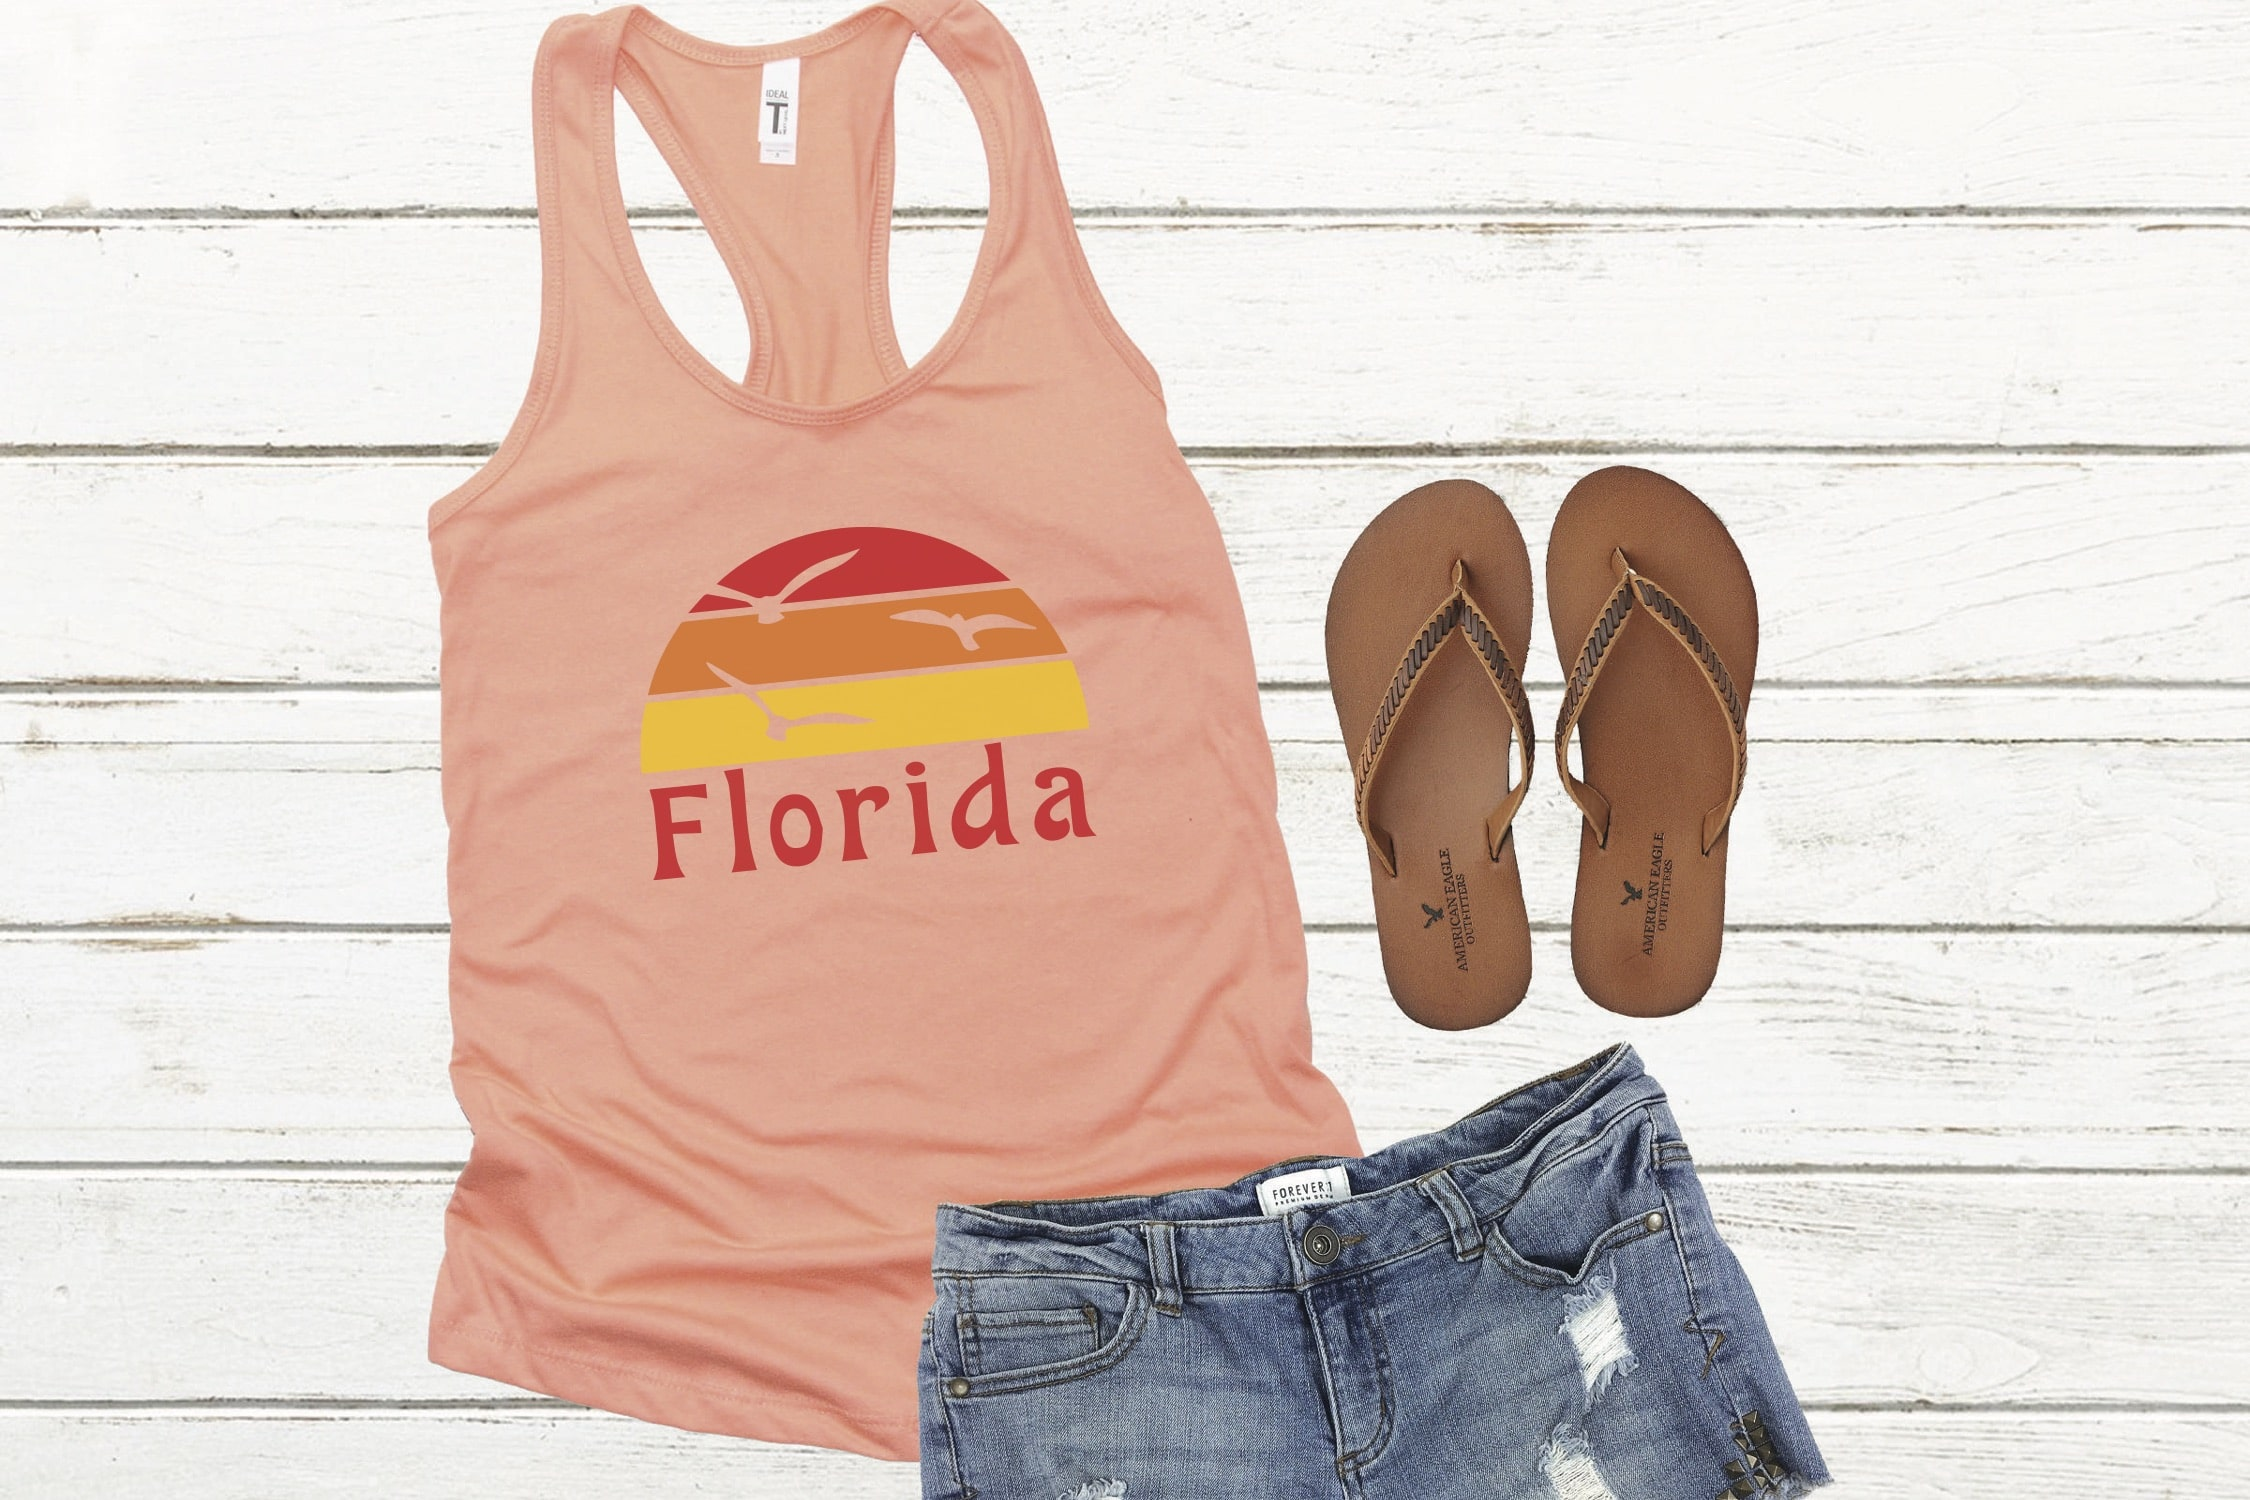 Pink tank top with Florida symbol with shorts and flip flops